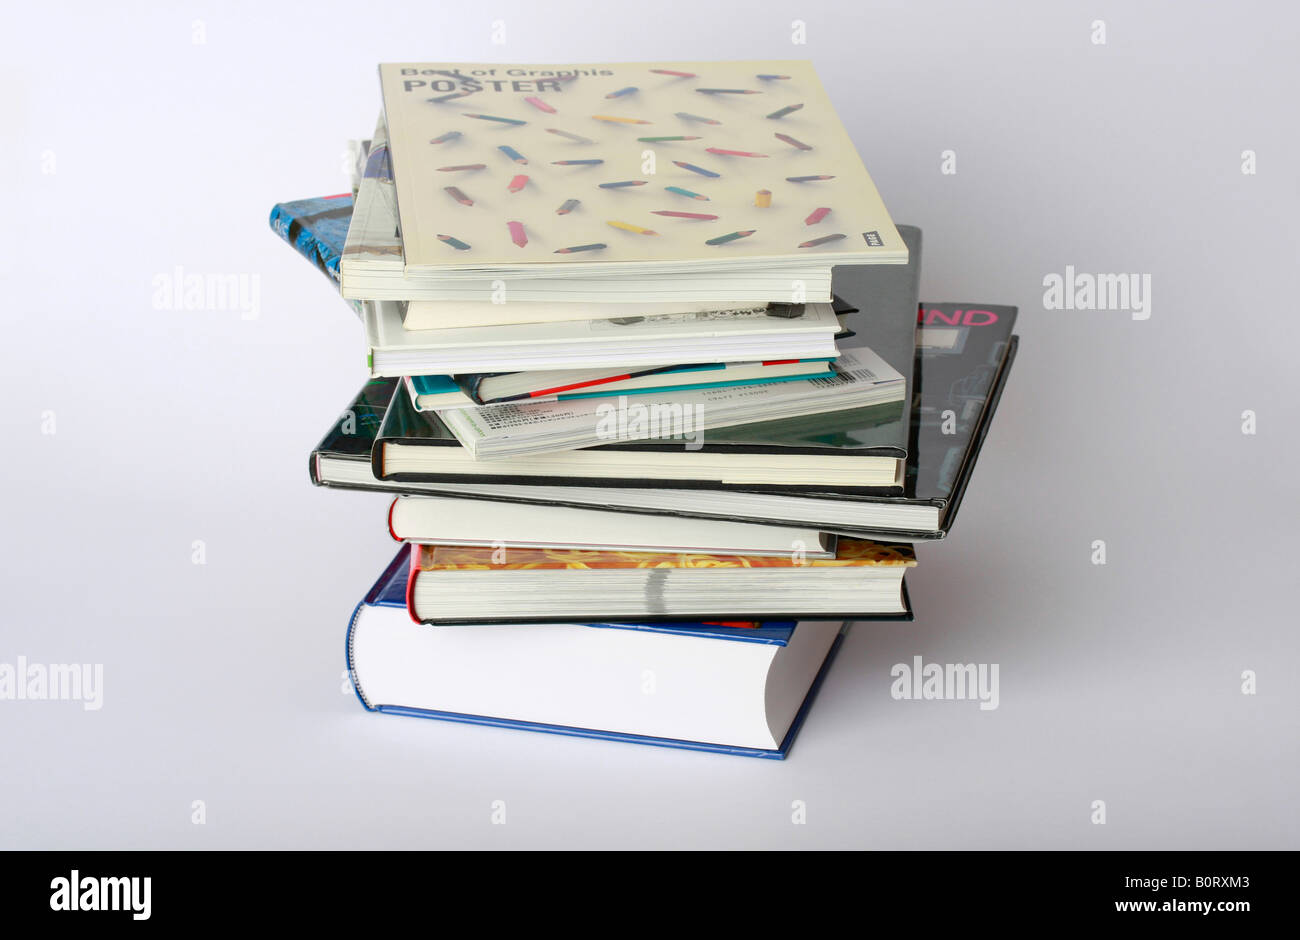 clip image pile of books editorial use only - Stock Image